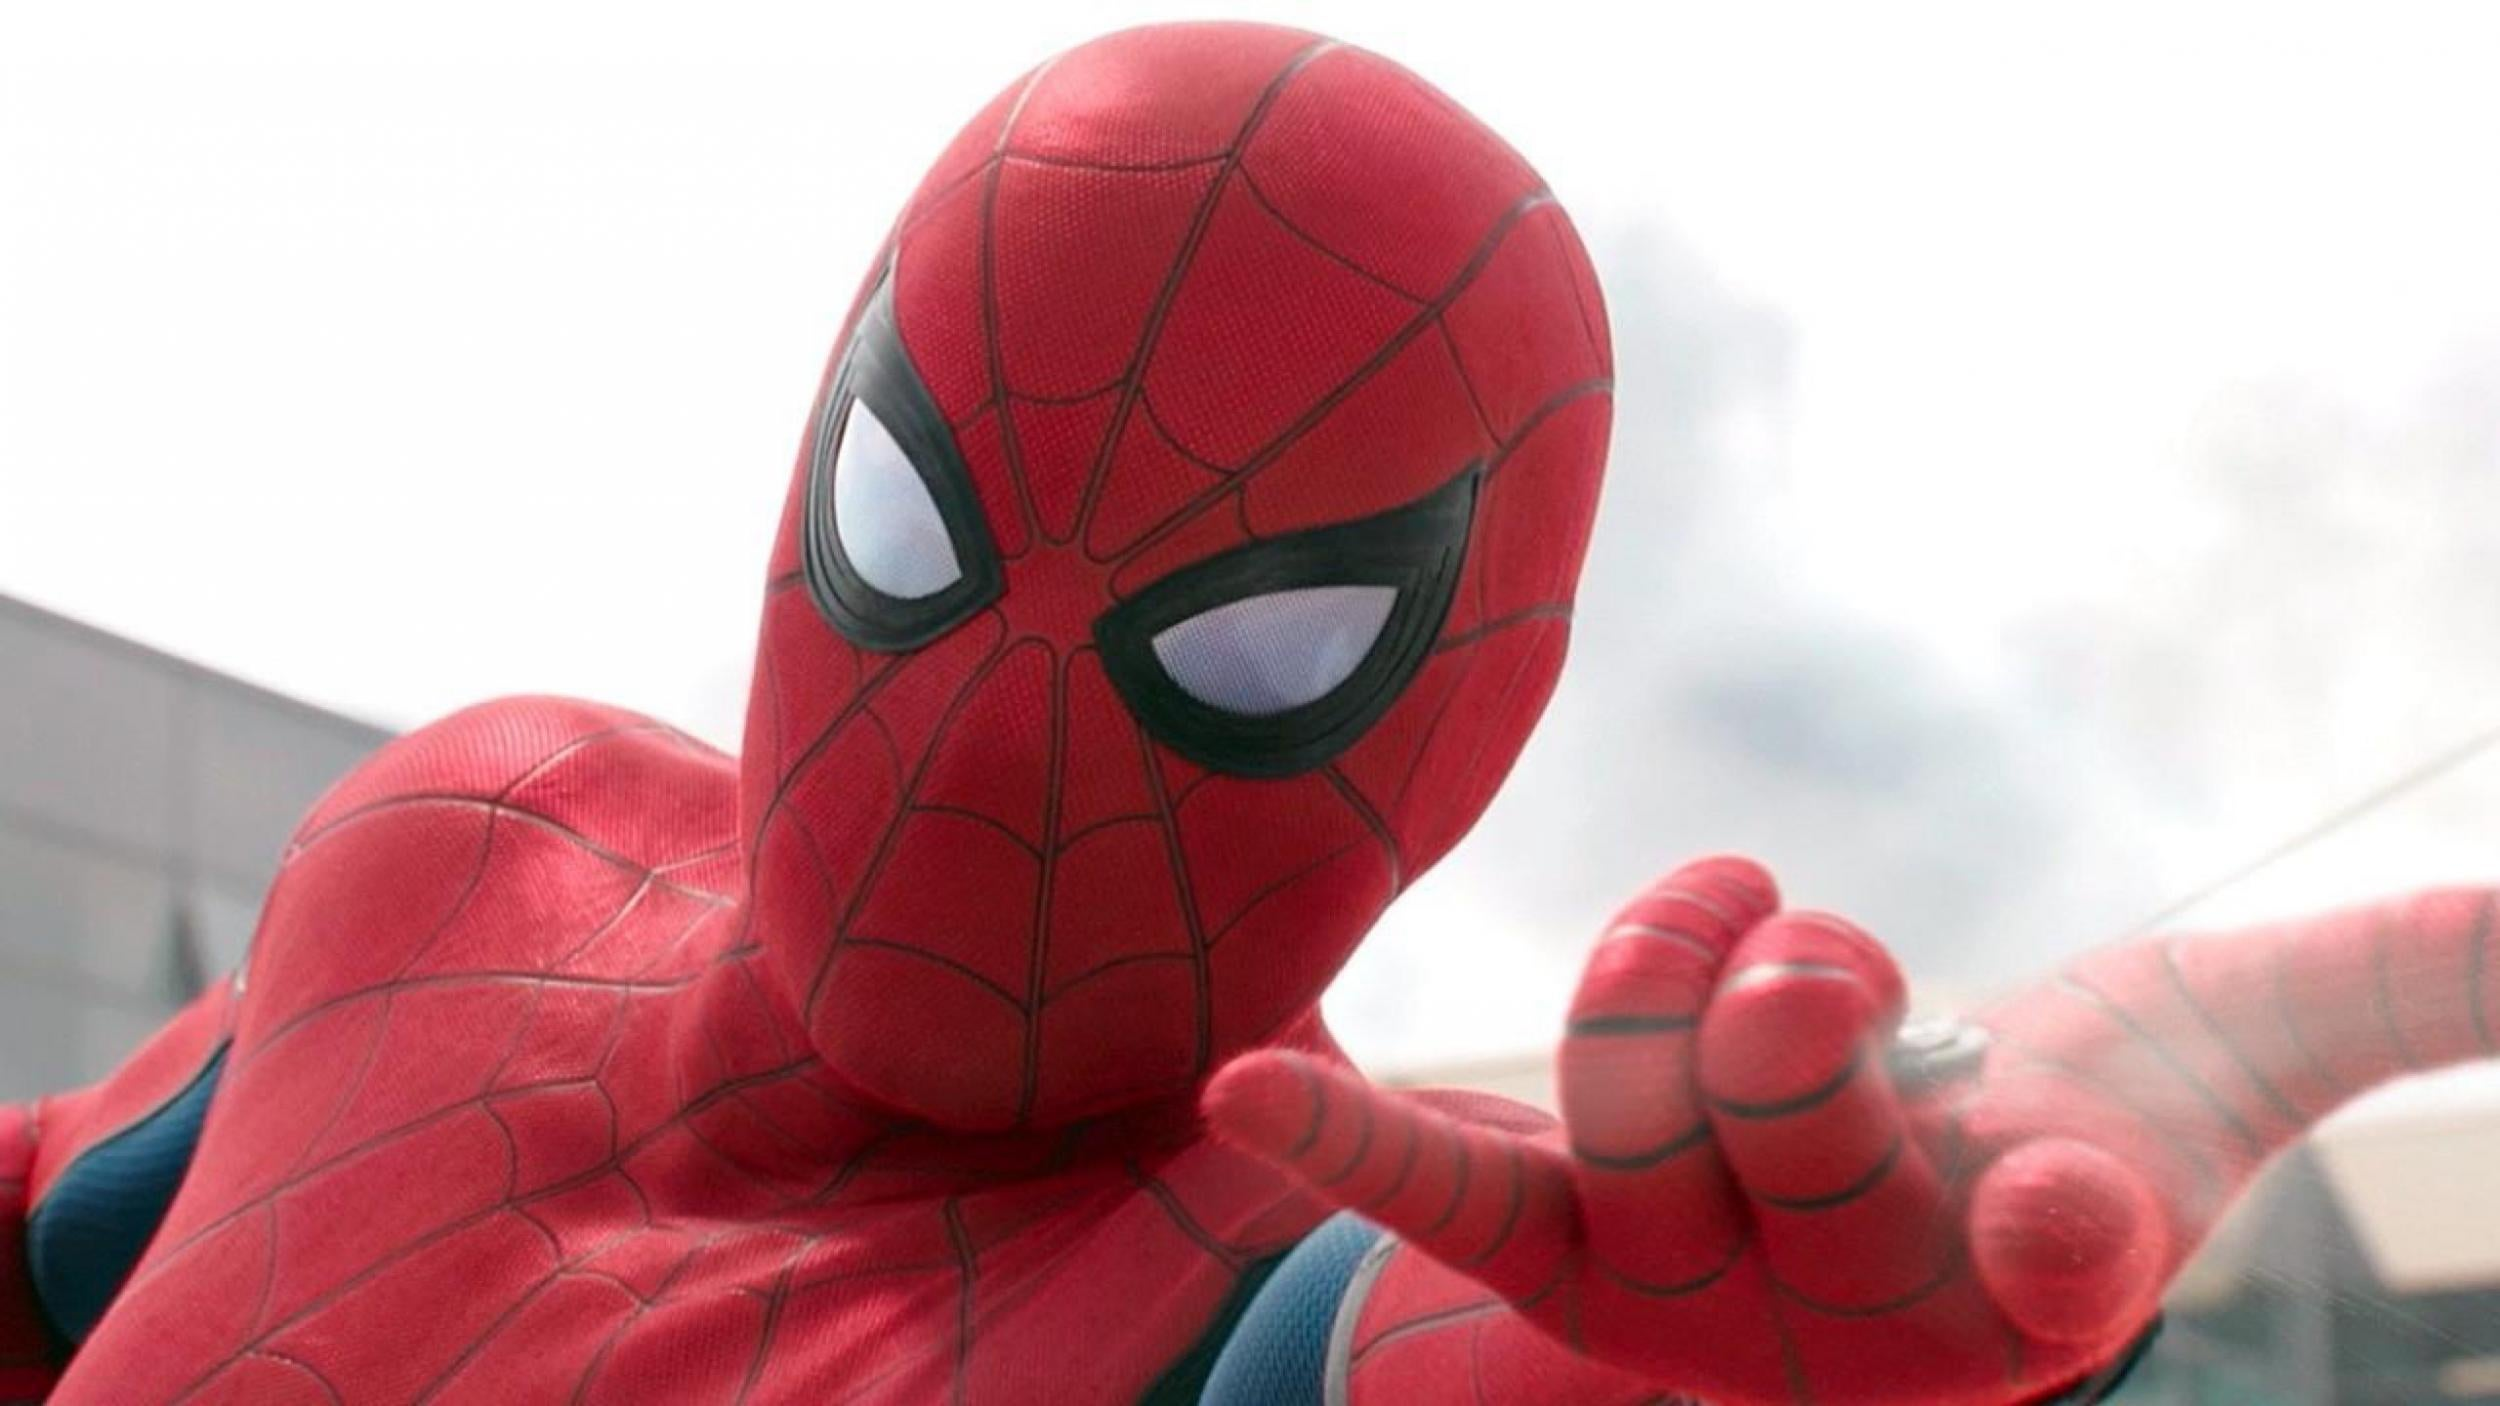 spider-man's mcu story could end in 2019: 'that's as far as it goes